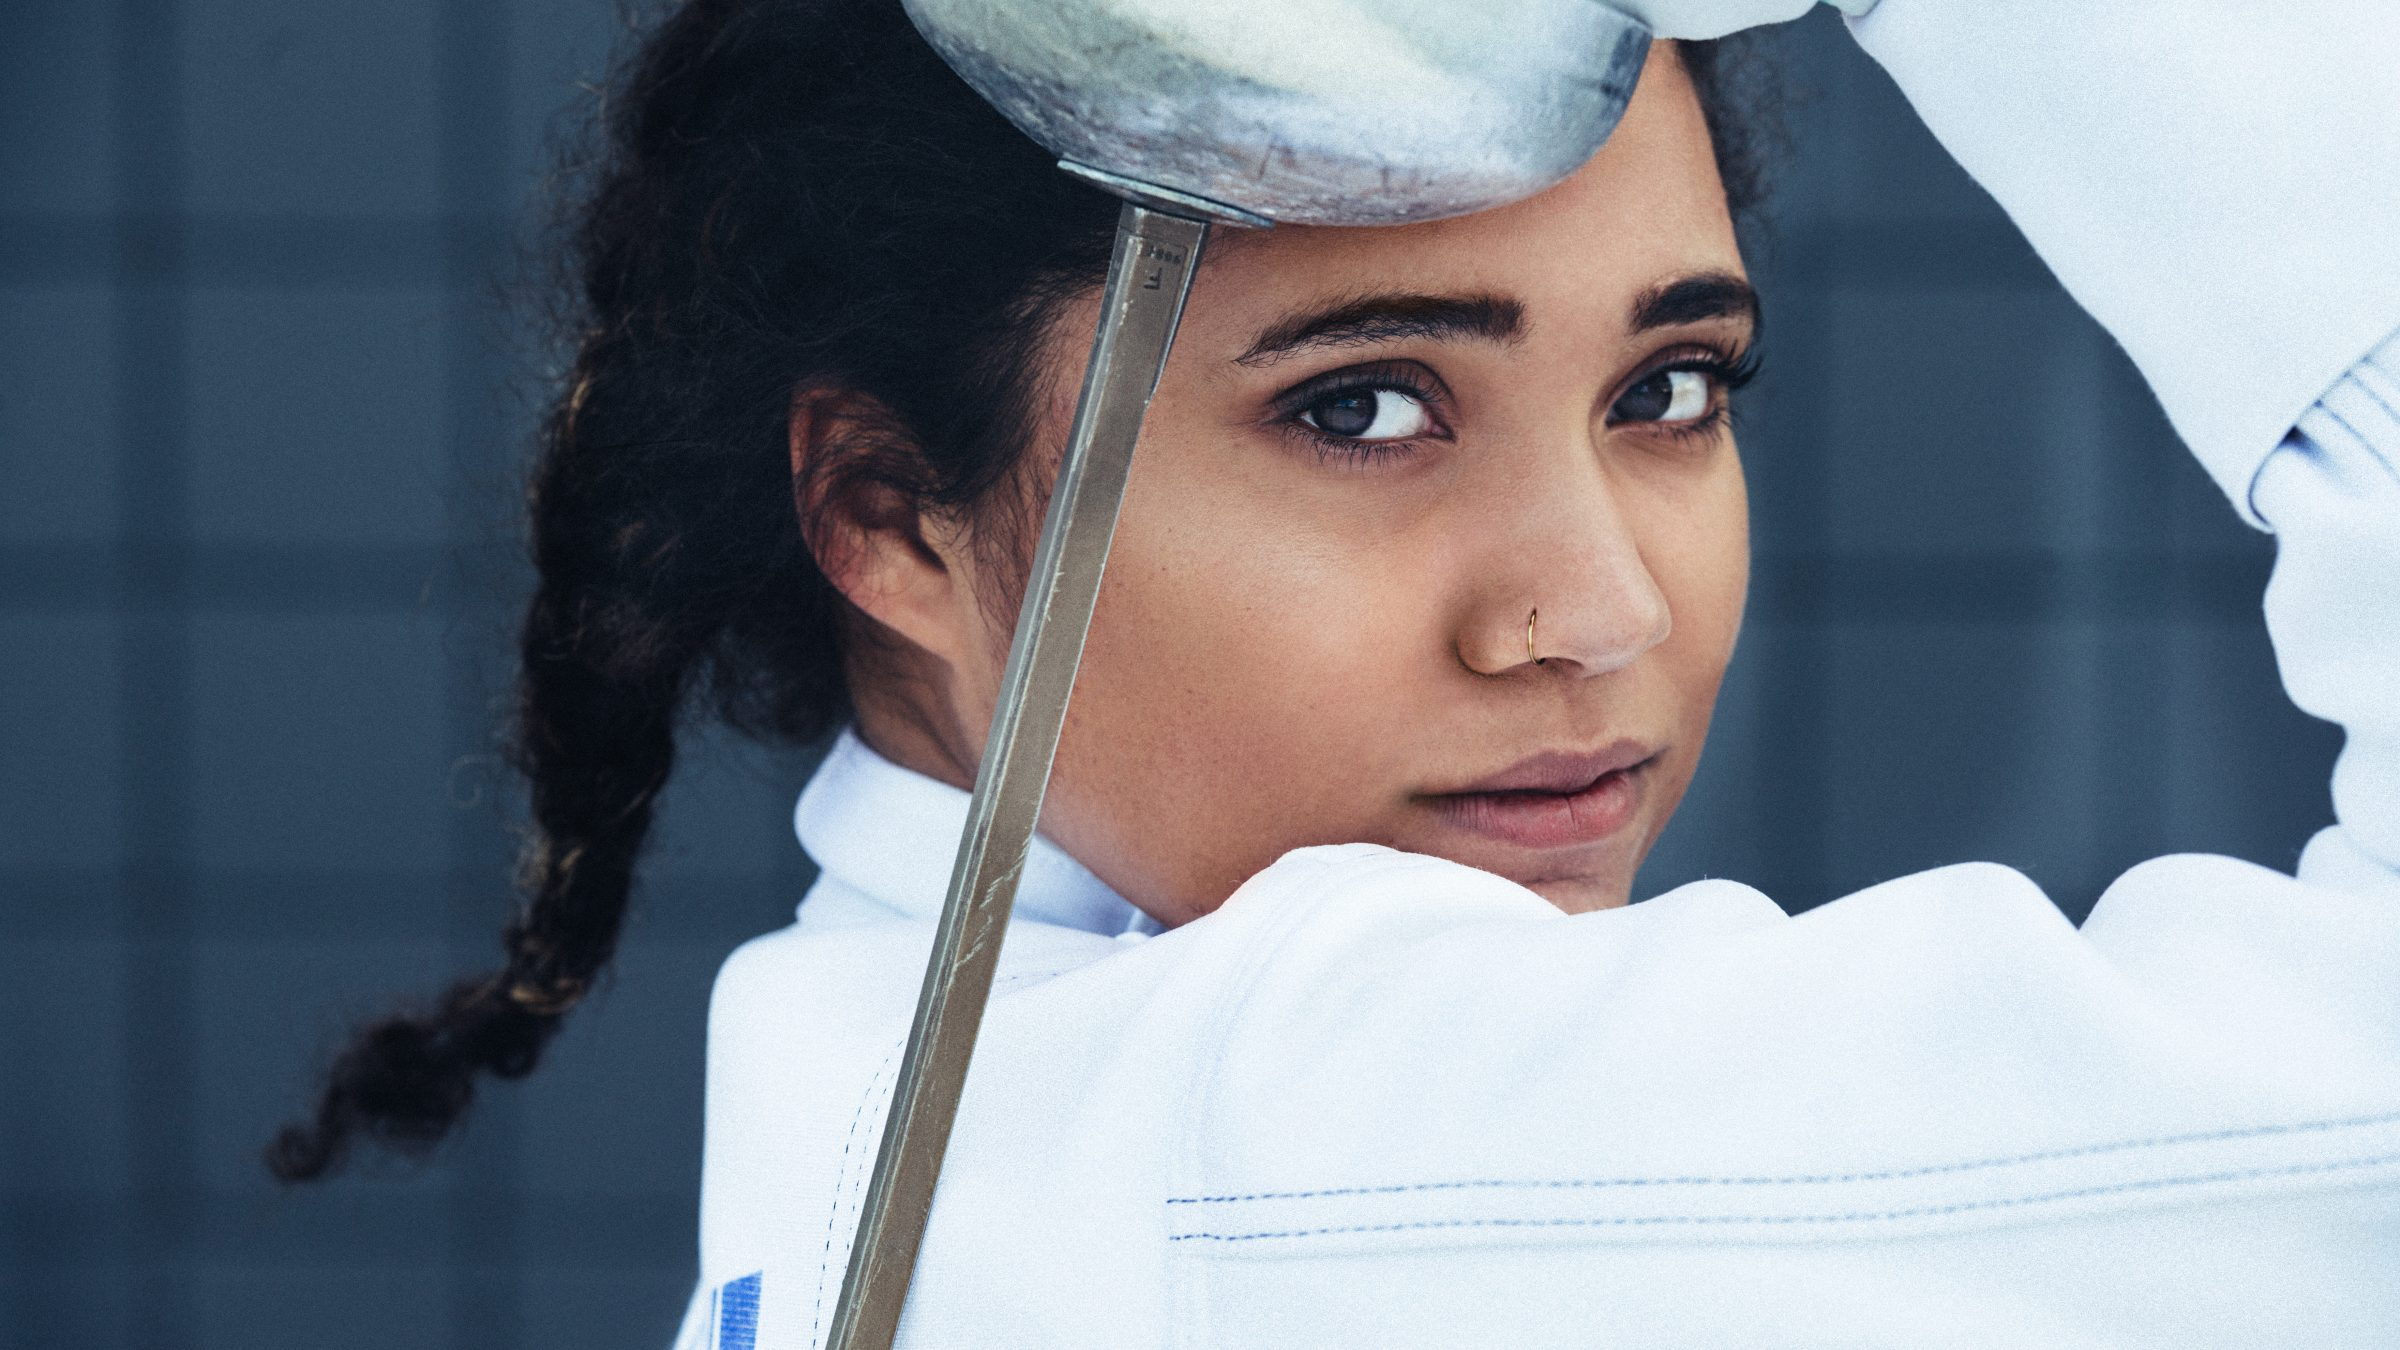 anchorage senior pictures girl fencing downtown anchorage